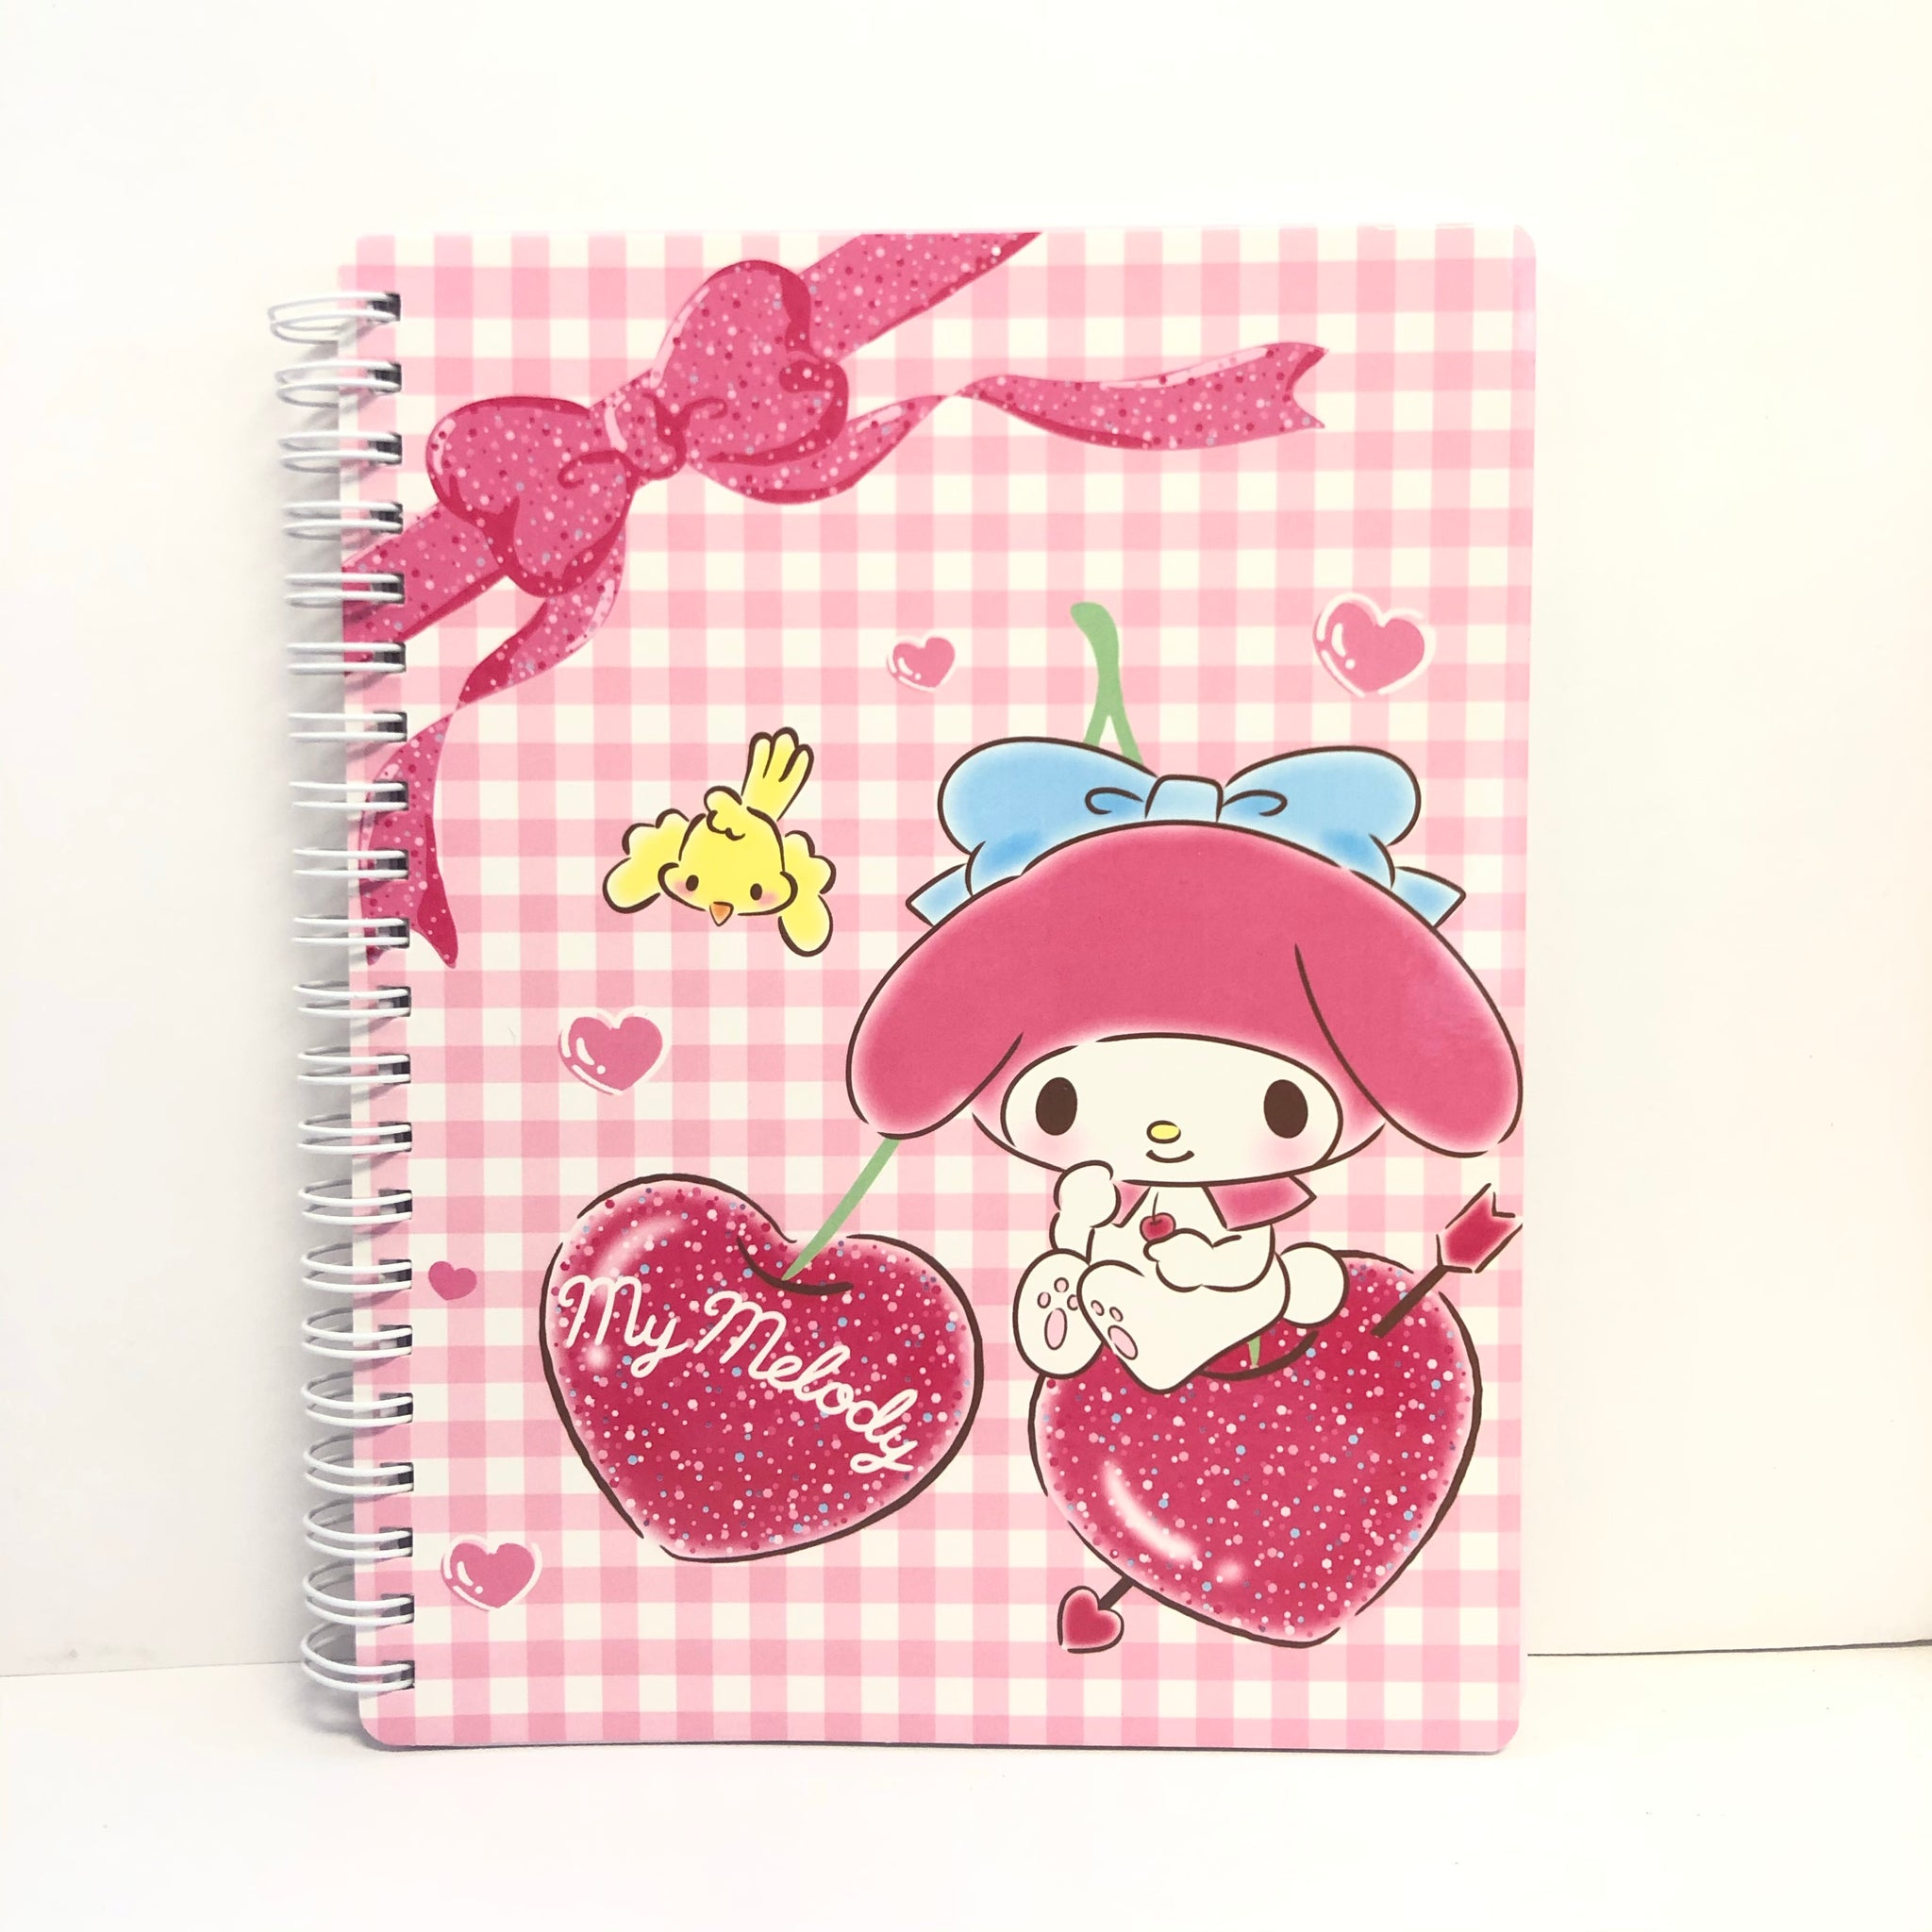 My Melody Cherry A5 Spiral Notebook